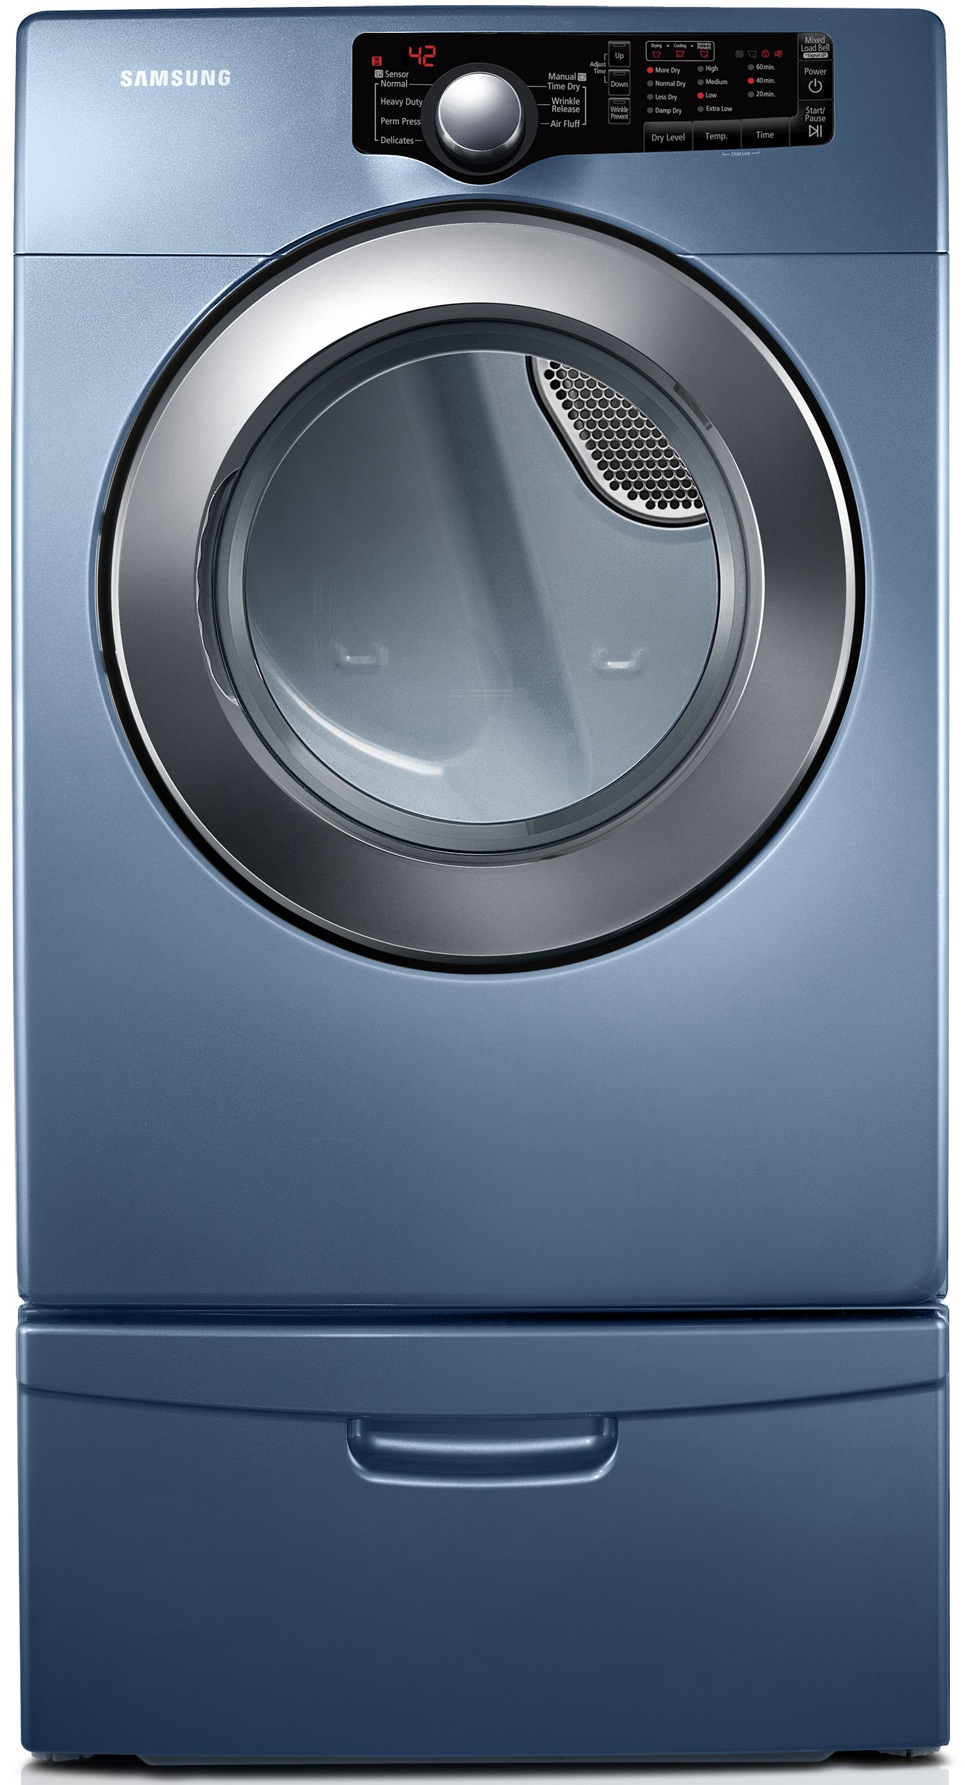 Samsung 7.3 cu ft. Electric Dryer - Blue